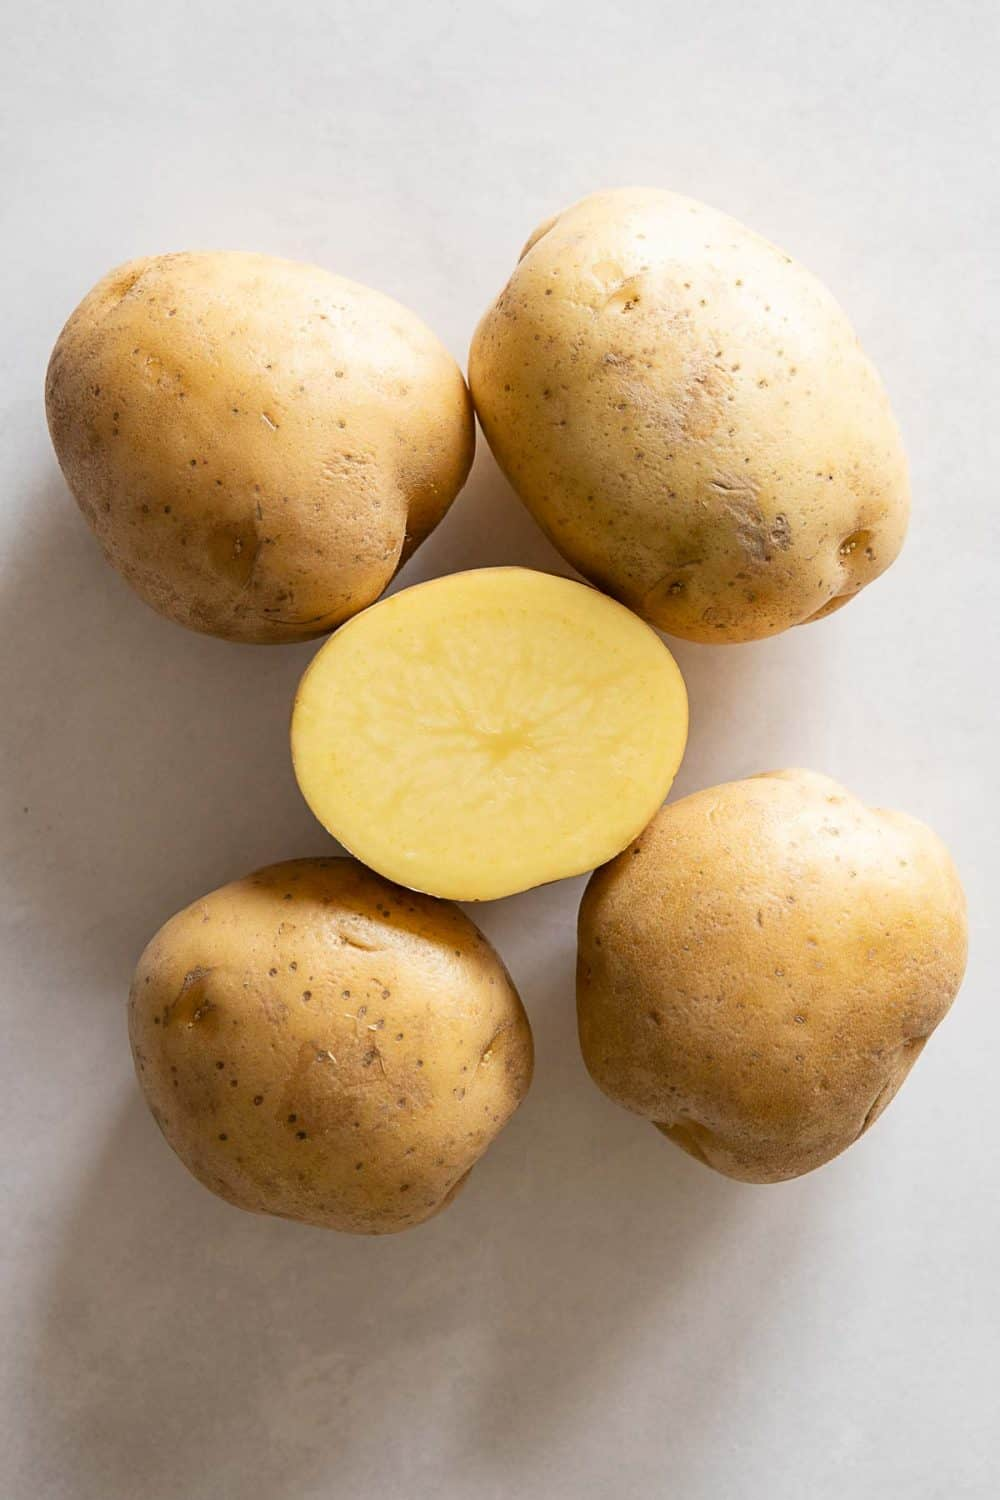 5 Yellow-fleshed potatoes, one cut open to show color. Instant Pot Mashed Potatoes recipe